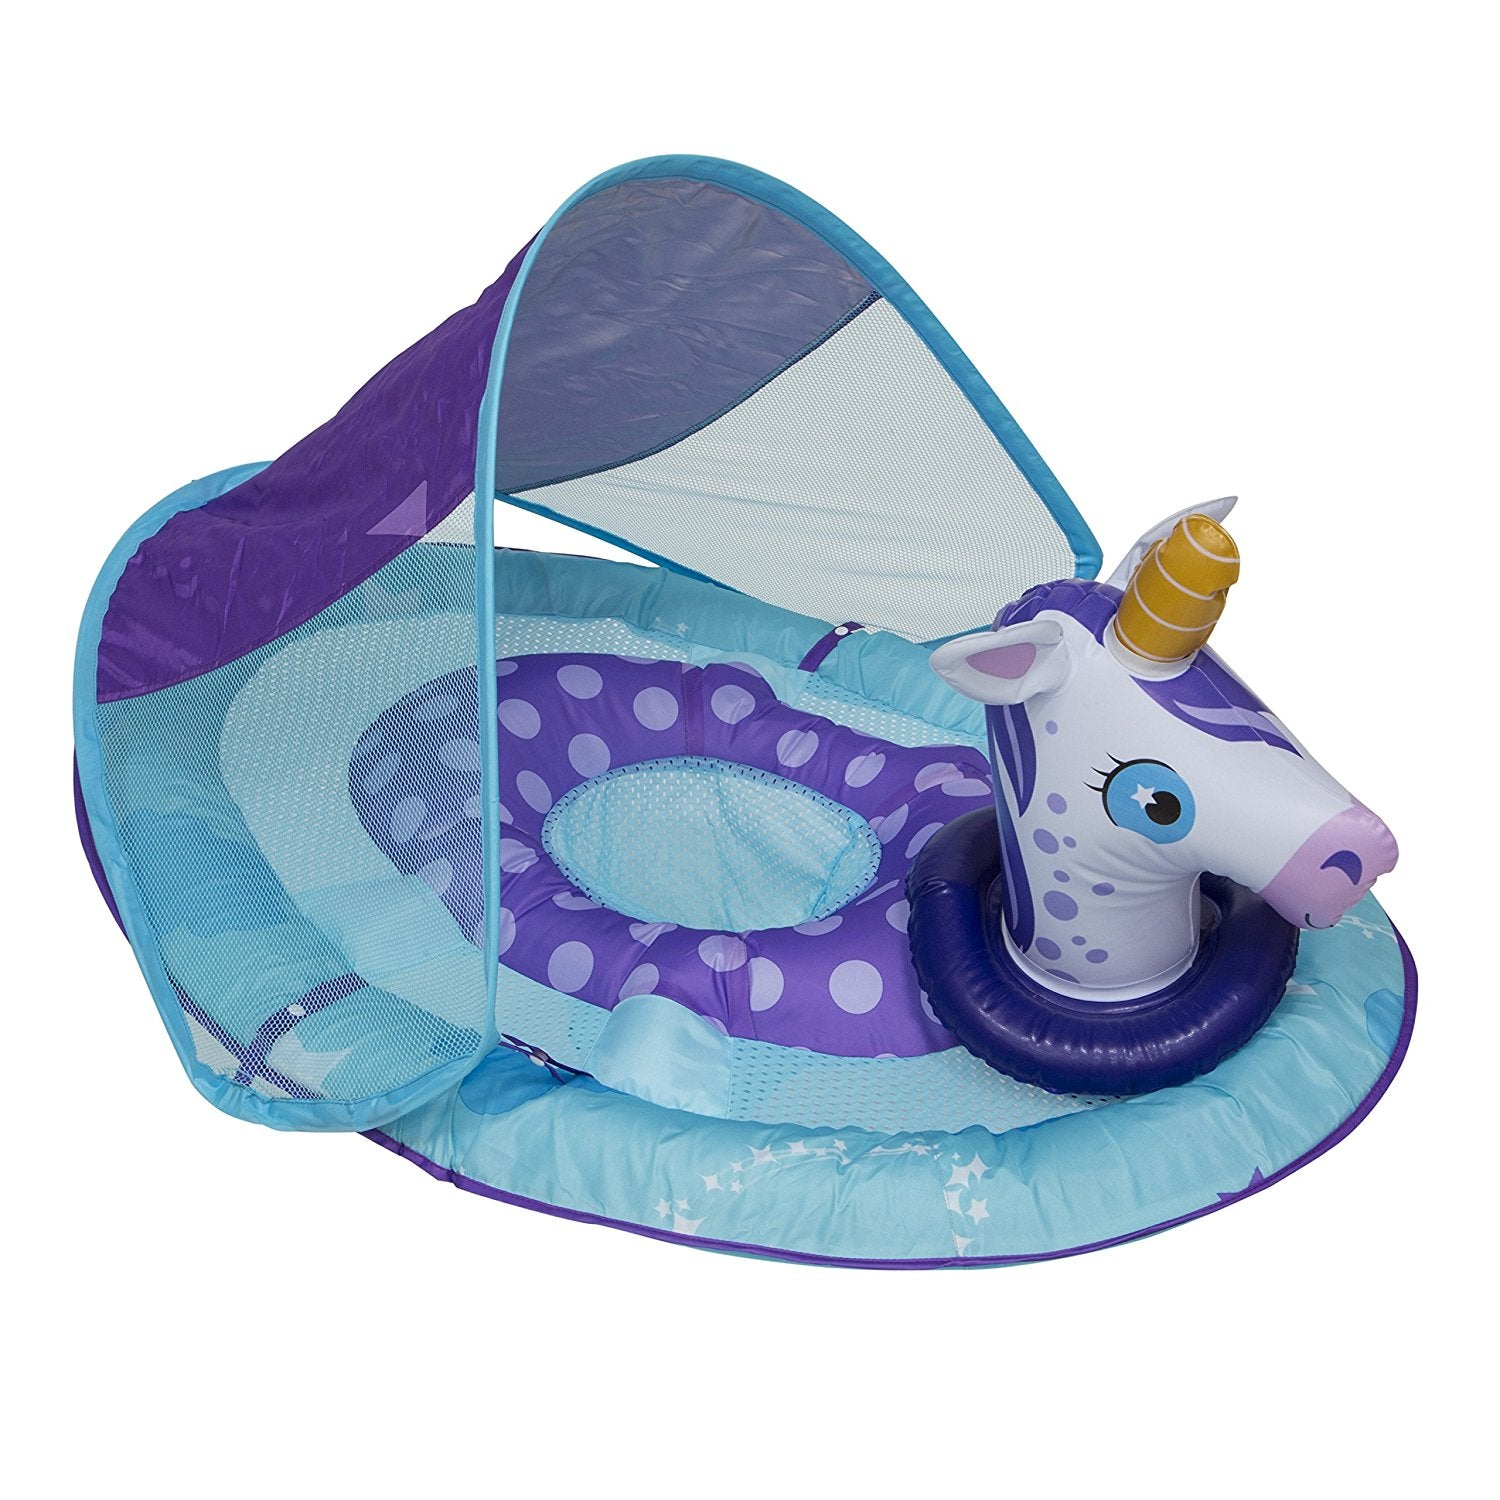 Baby Swim Floater with Sun Canopy & Animal Design